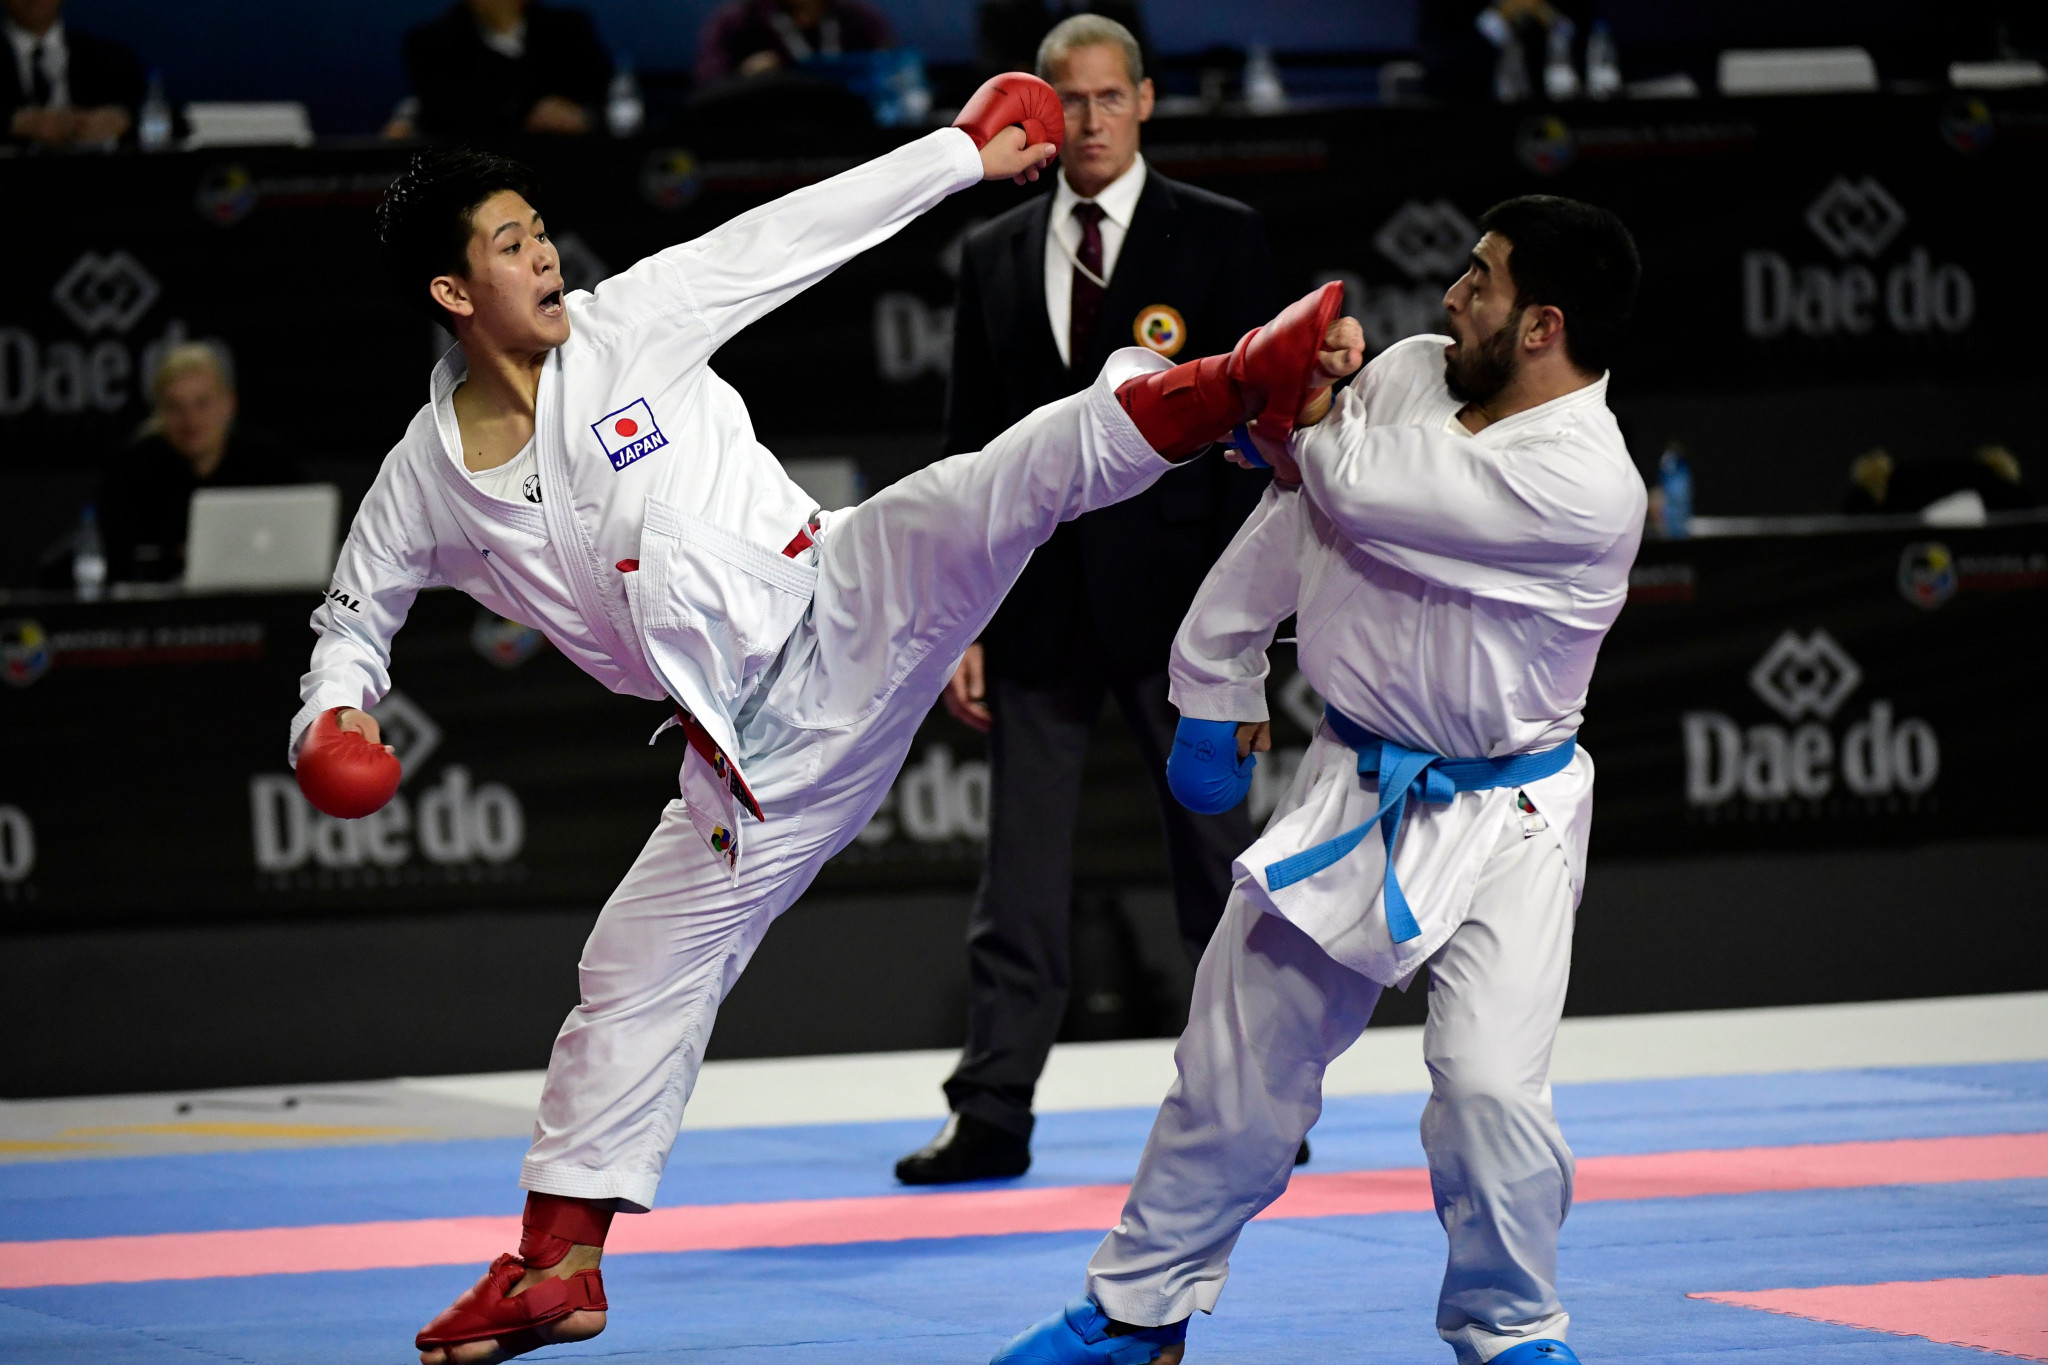 Espinós claims popularity of karate on social media contradicts reasoning for Paris 2024 exclusion